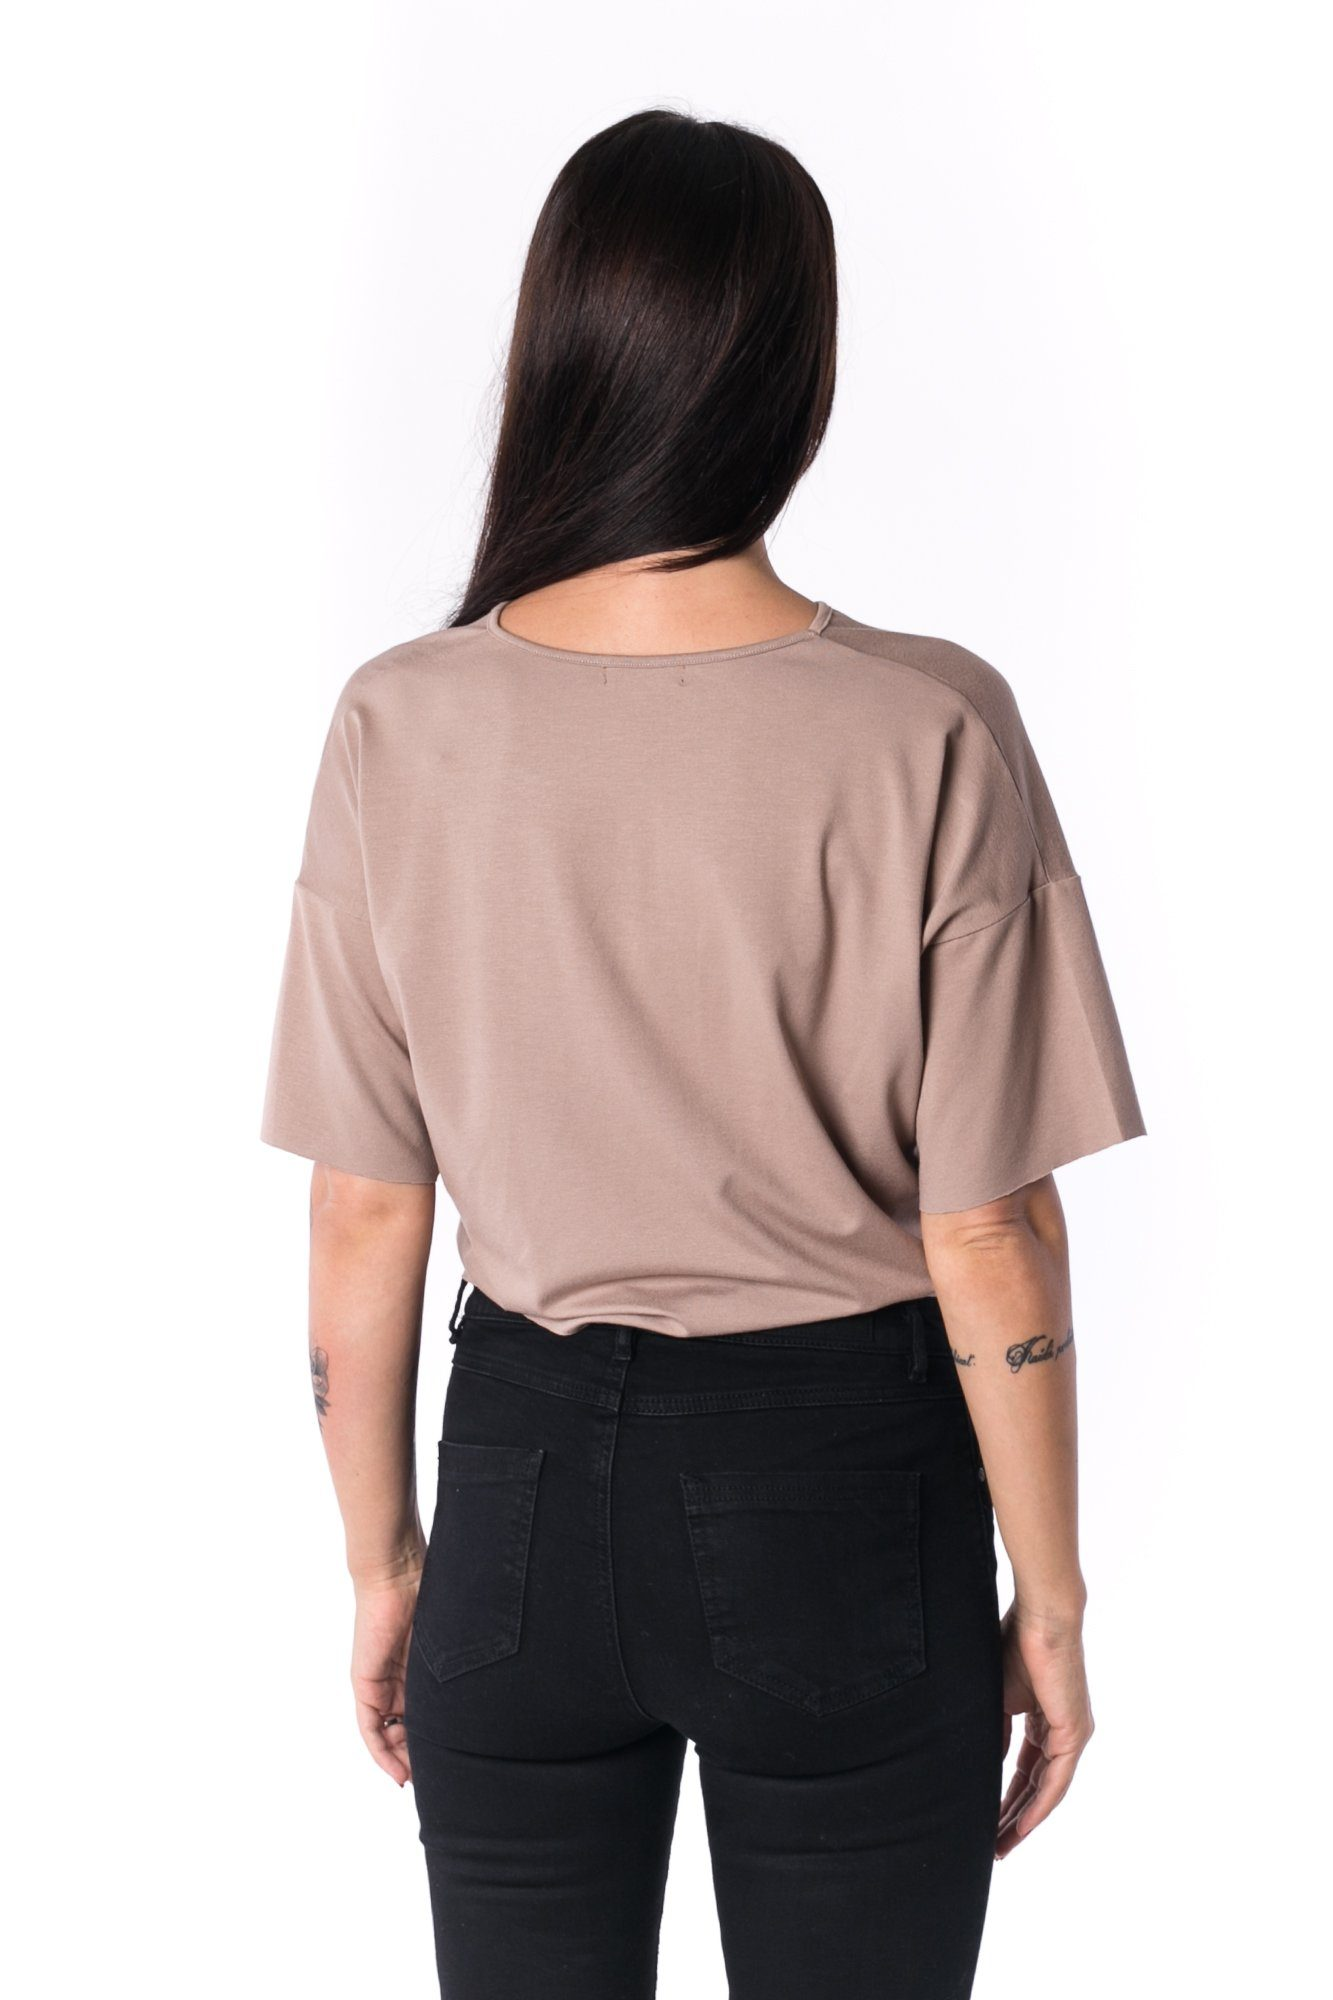 TheG Woman Panelled Oversize Crop V-Neck Tee 17 // mocca